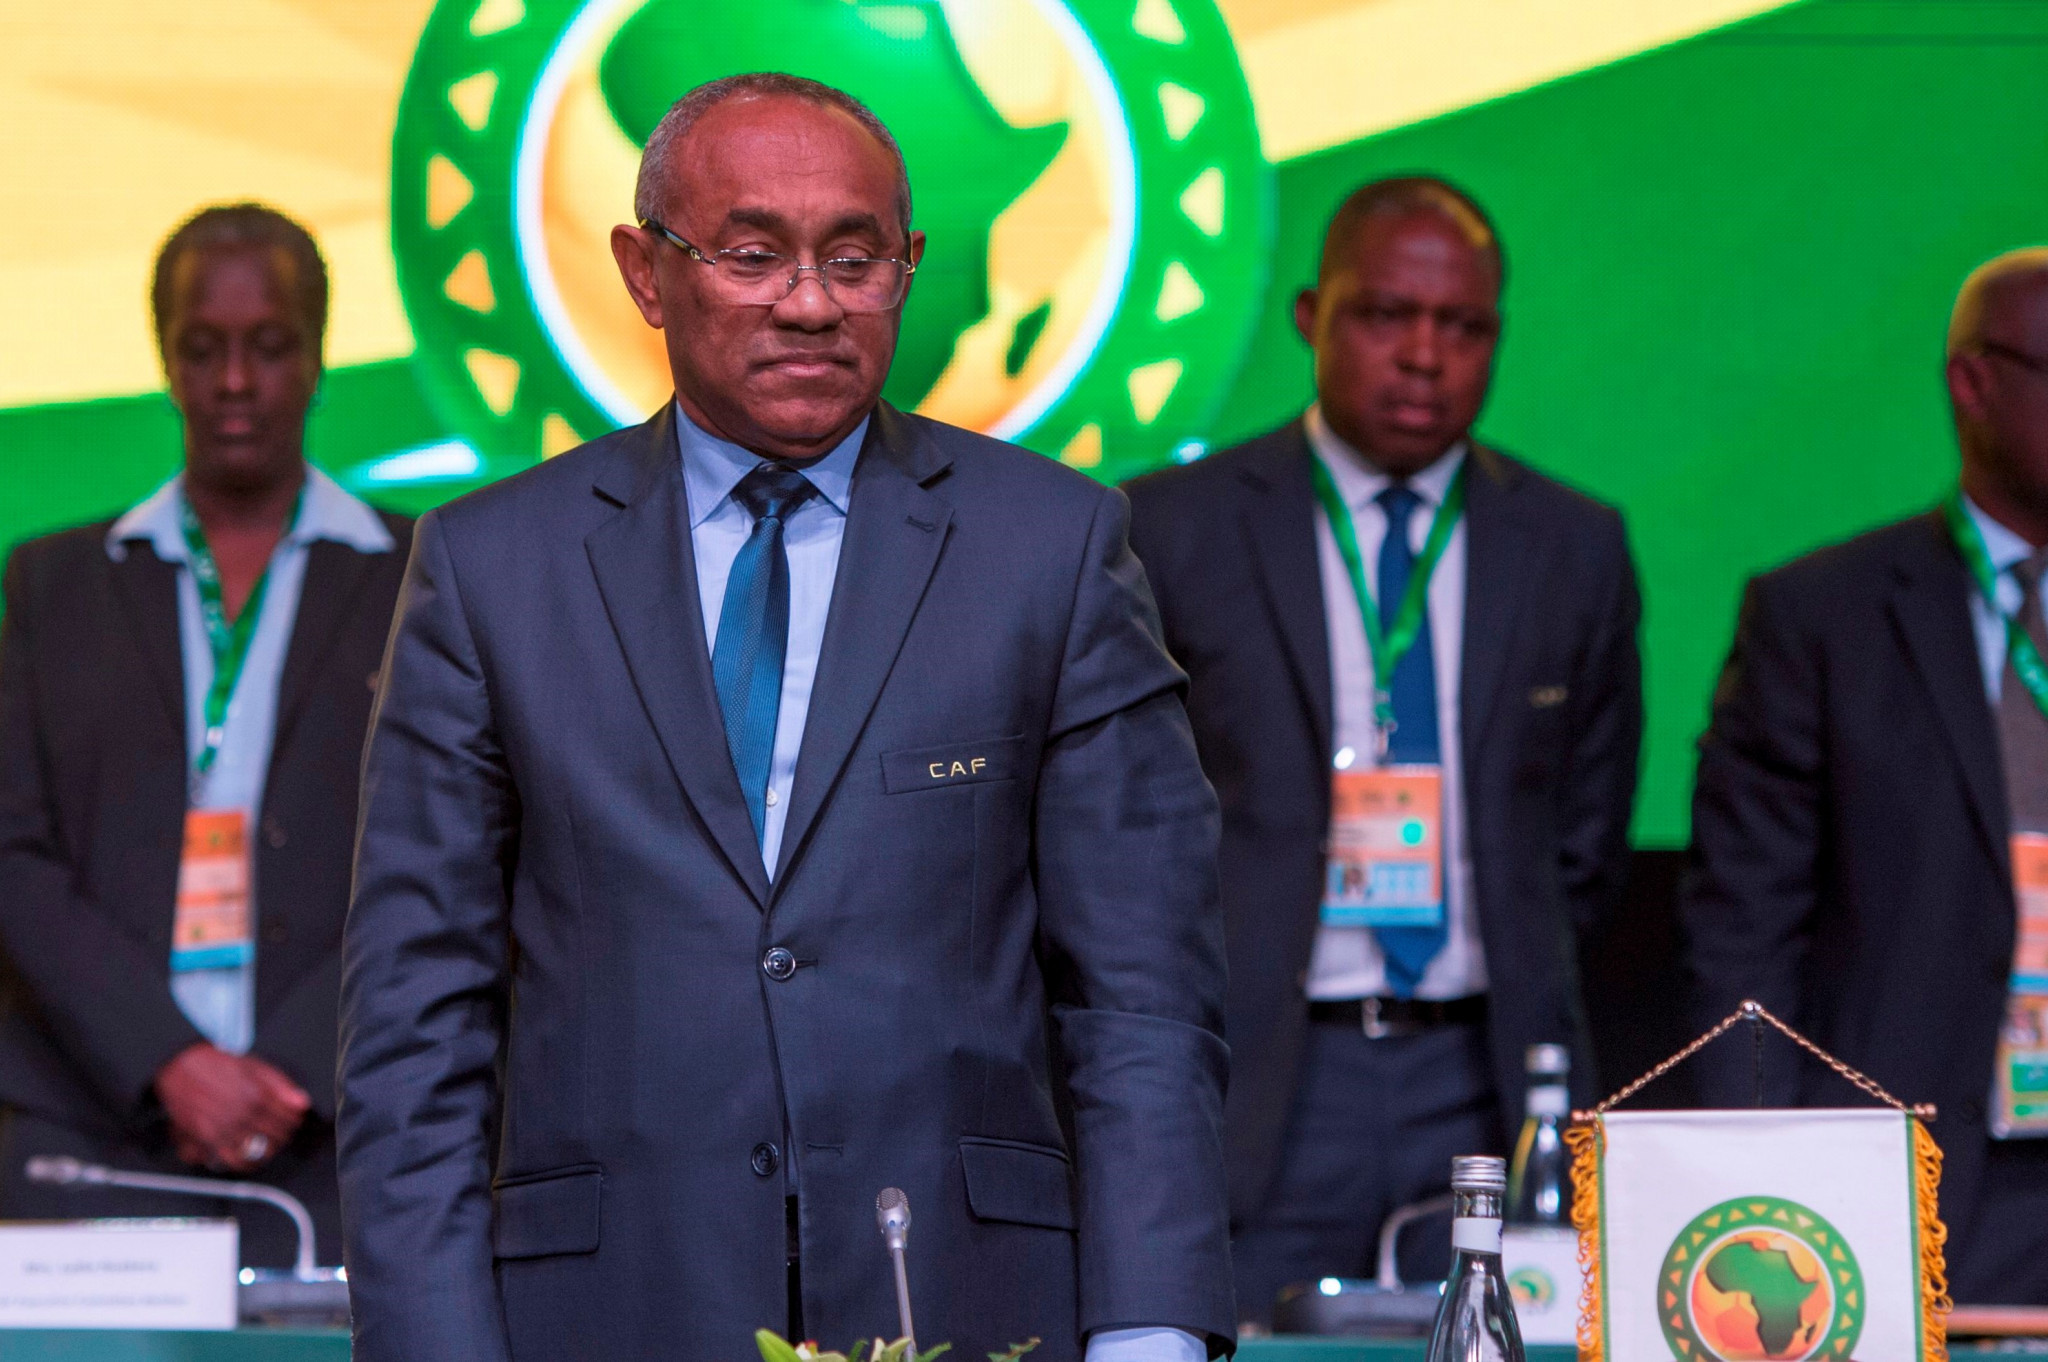 Ahmad restored as CAF President as CAS stays ban from football